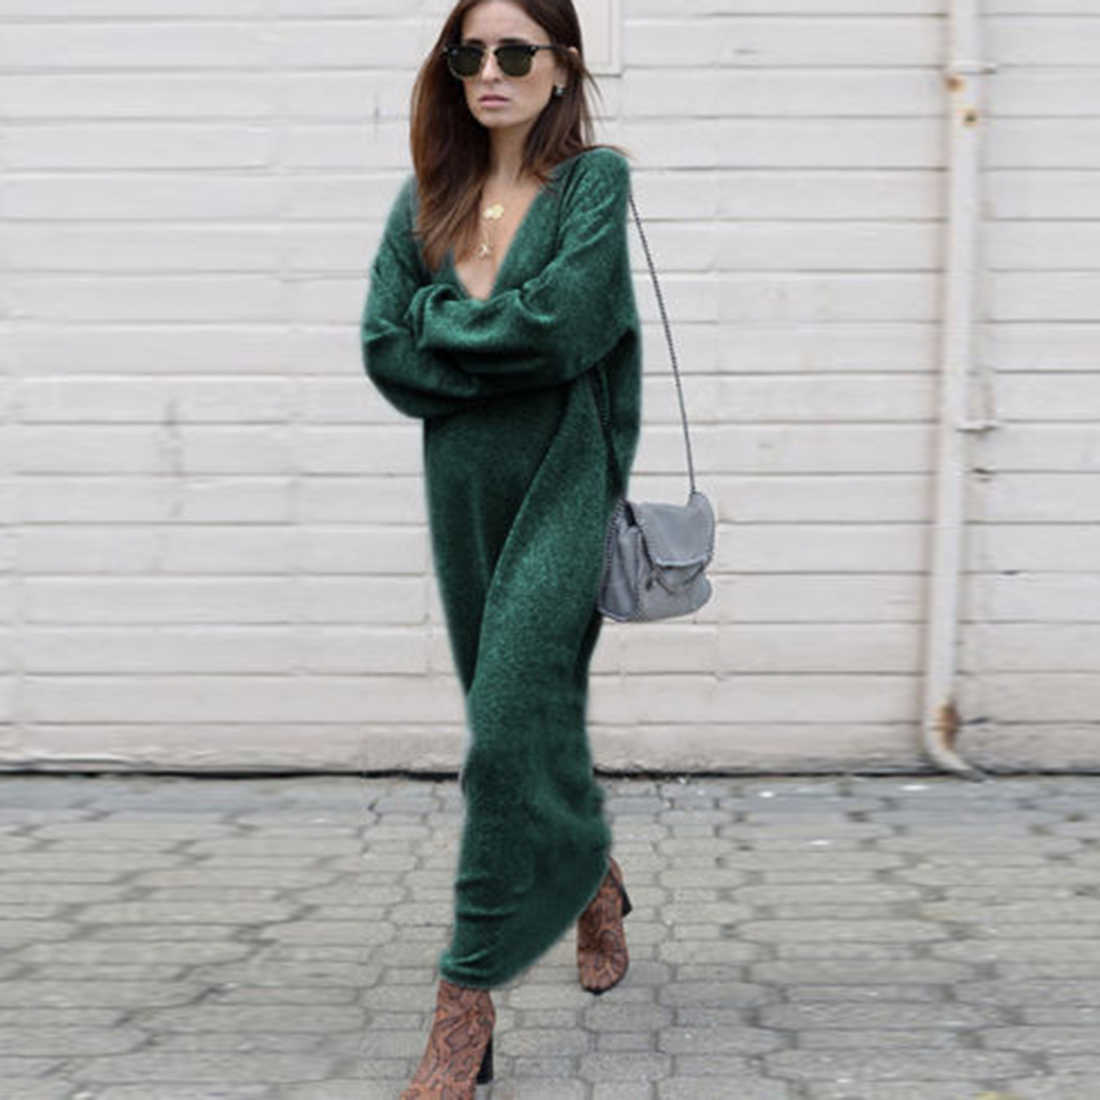 Autumn Winter Warm Knitted Long Sweater Women Solid v Neck Long Sleeve Casual Loose pulover feminino